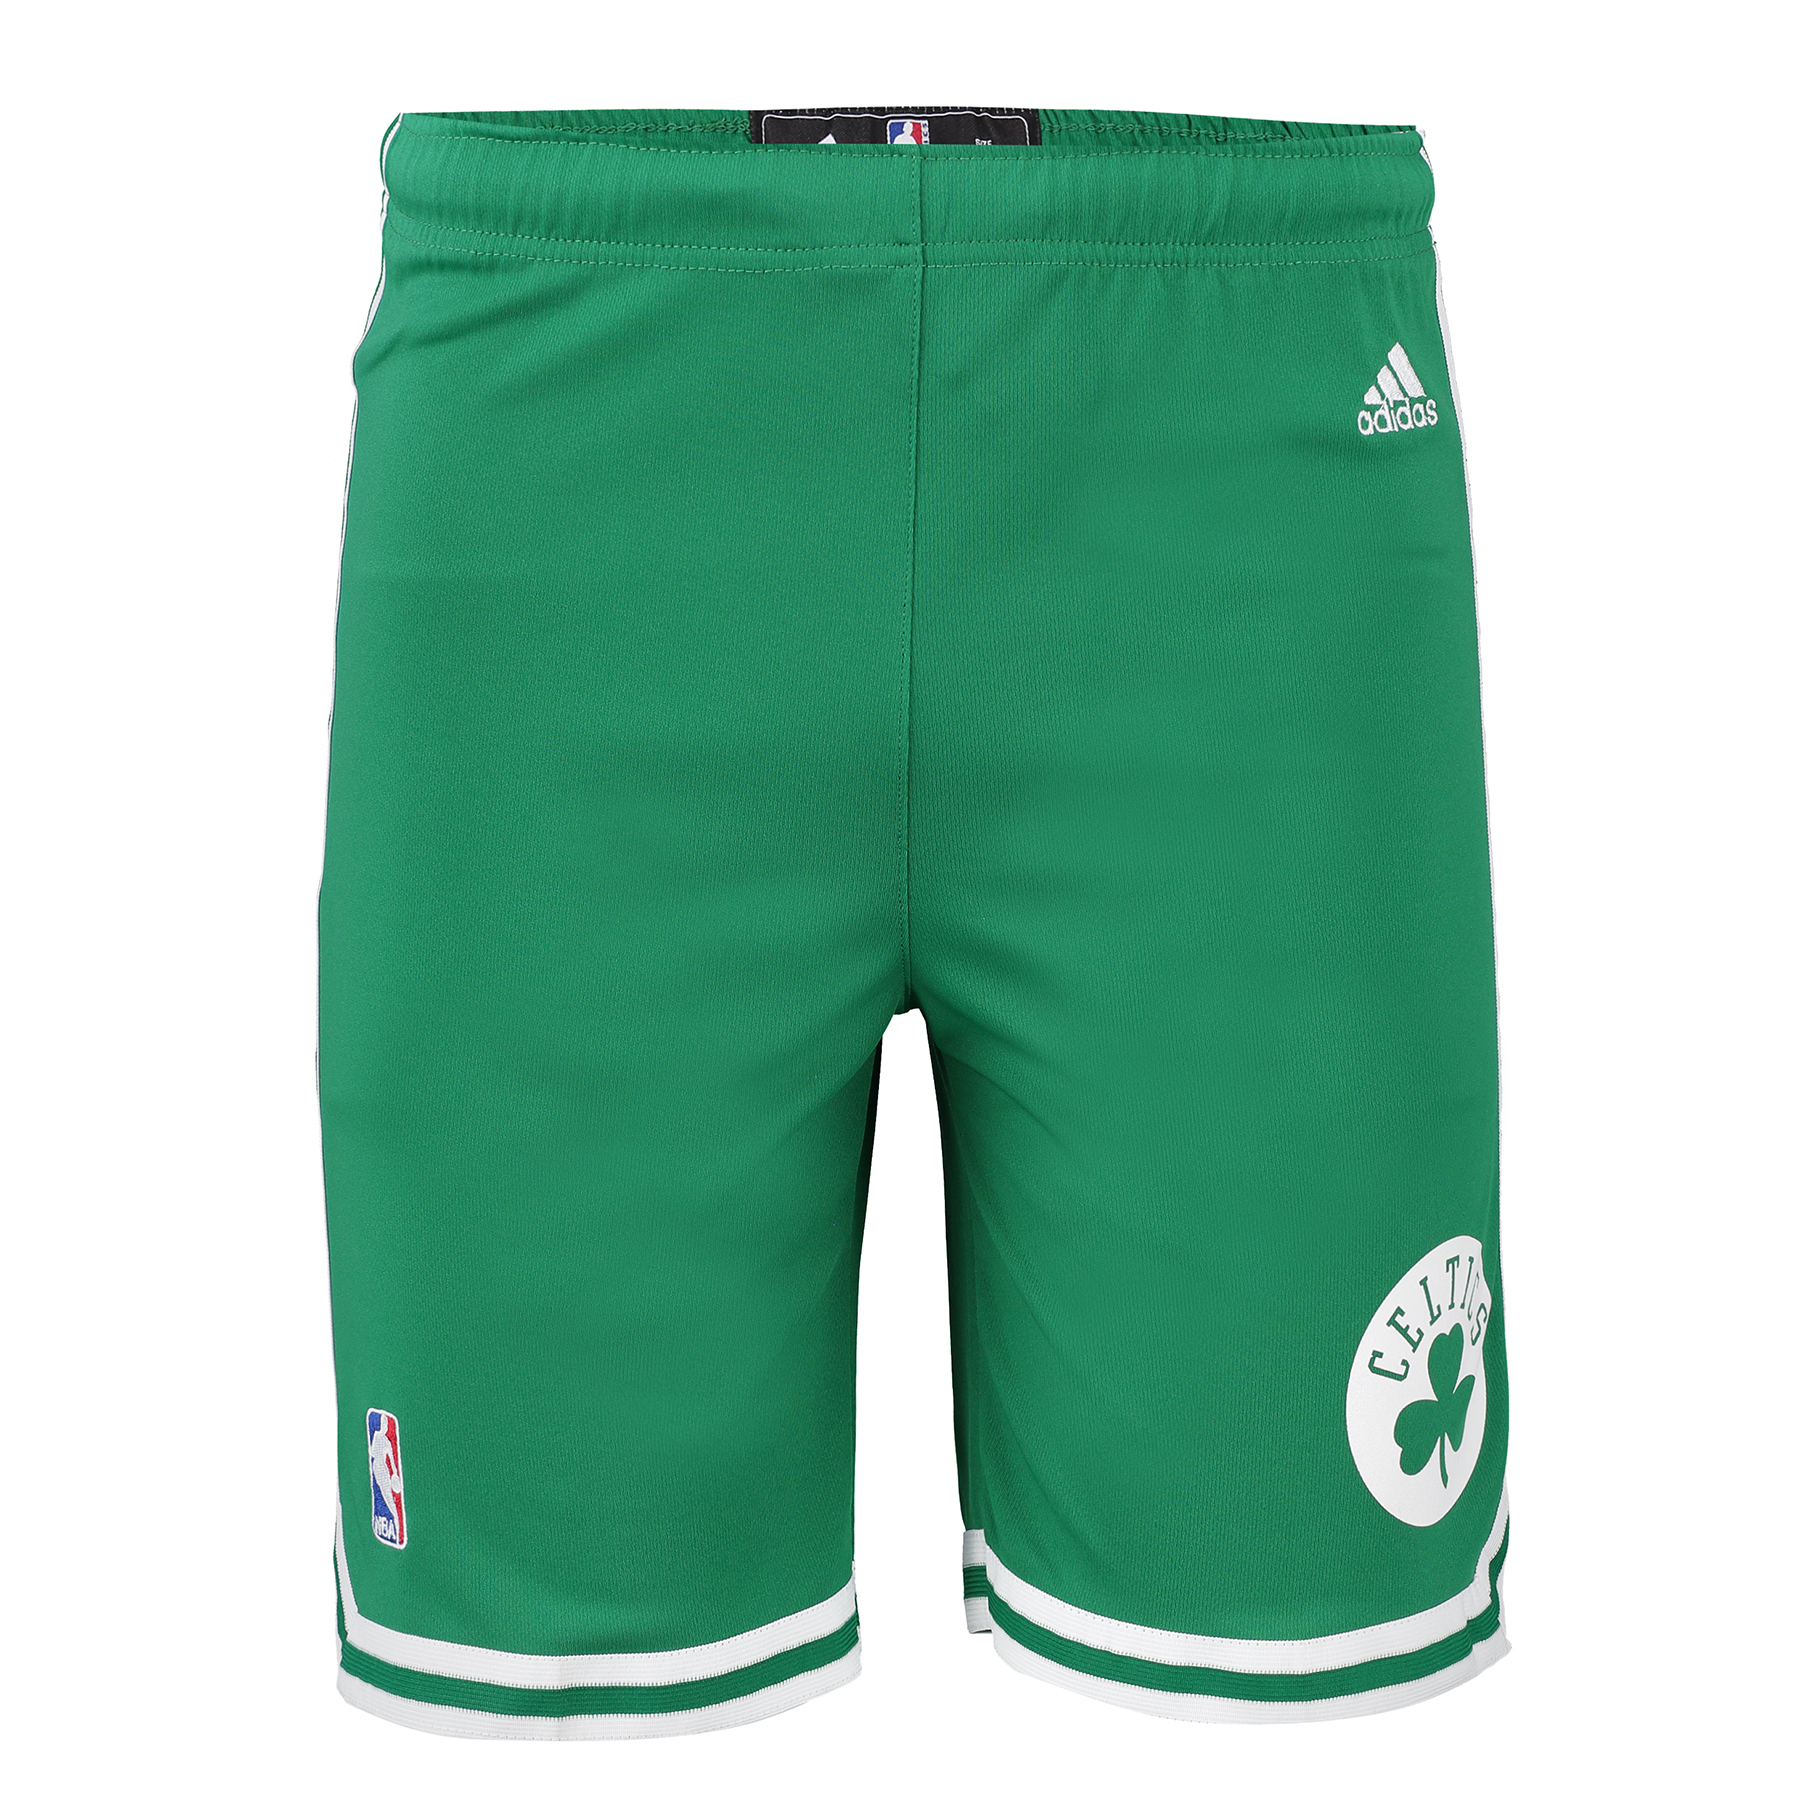 Boston Celtics Road Replica Shorts - Youth